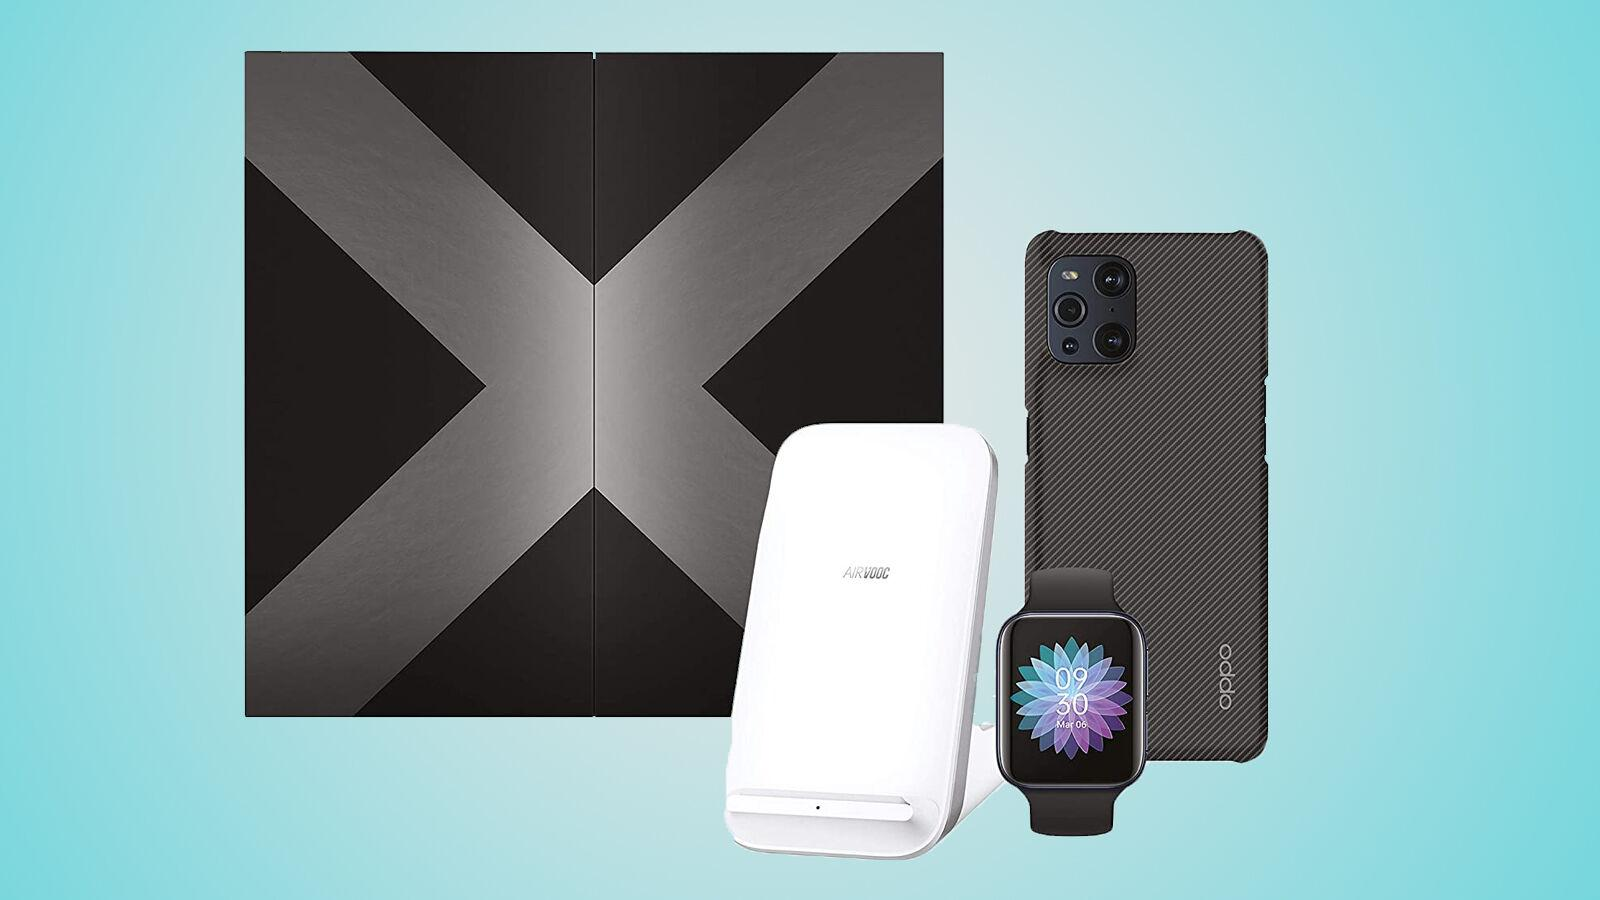 Oppo Find X3 gifts